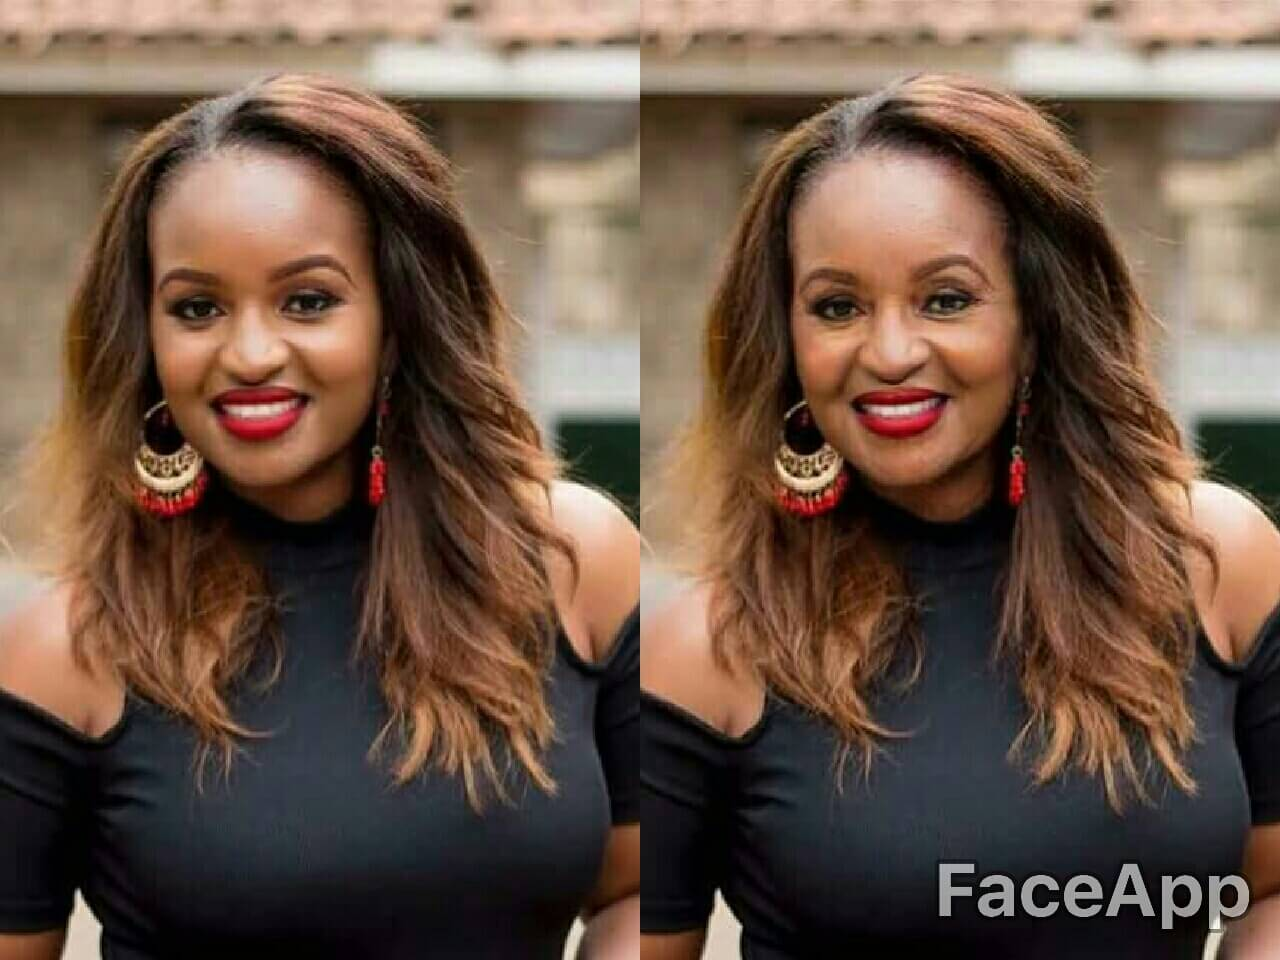 WhatsApp Image 2017 10 29 at 19.37.48 6 1 - When beauty fades! Photos Of Kenyan Celebrities 20 Years From Now!